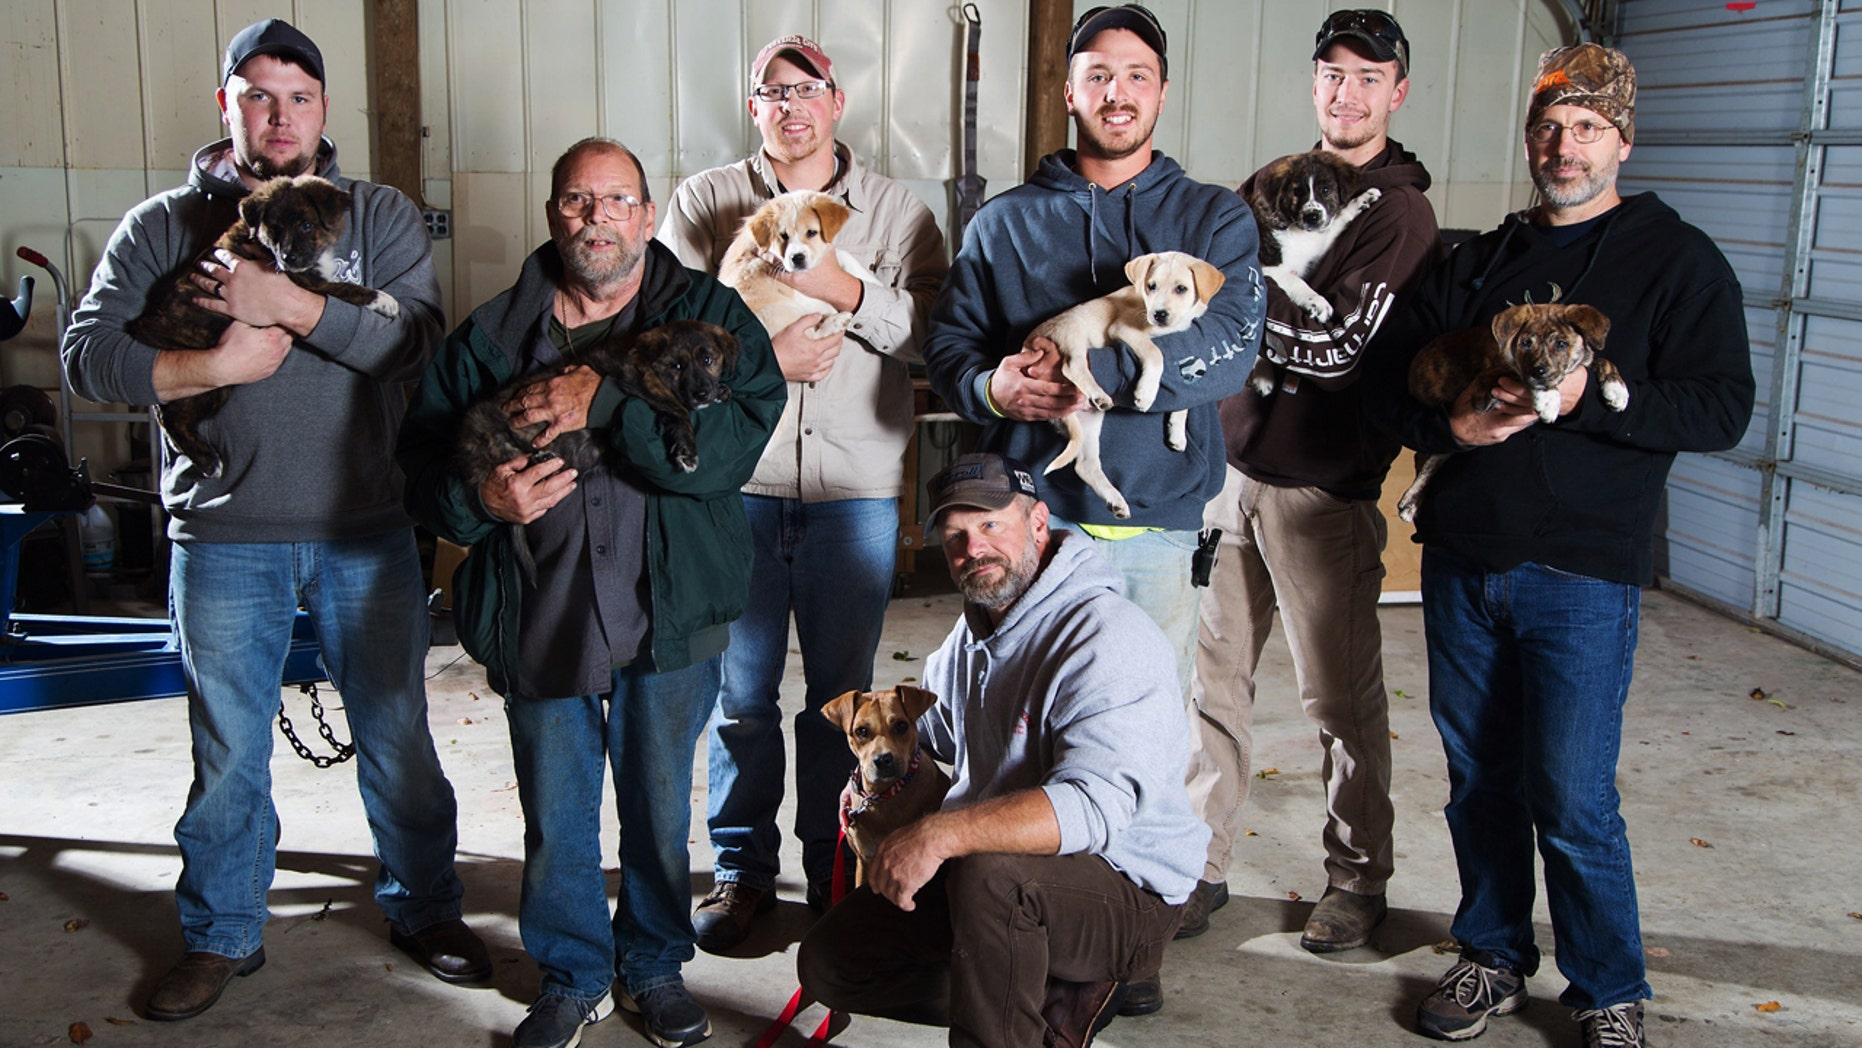 Oct. 26, 2016: This photo shows, from left, Jake Rowe holding Knox, Joe Gruber holding Bear, Alex Manchester holding Rosie, Doug Craddock with Annie, Mitchel Craddock holding Brimmie, Brent Witters holding Finn and Dexter Jennings holding Gunner pose for a photo in Vicksburg, Mich.